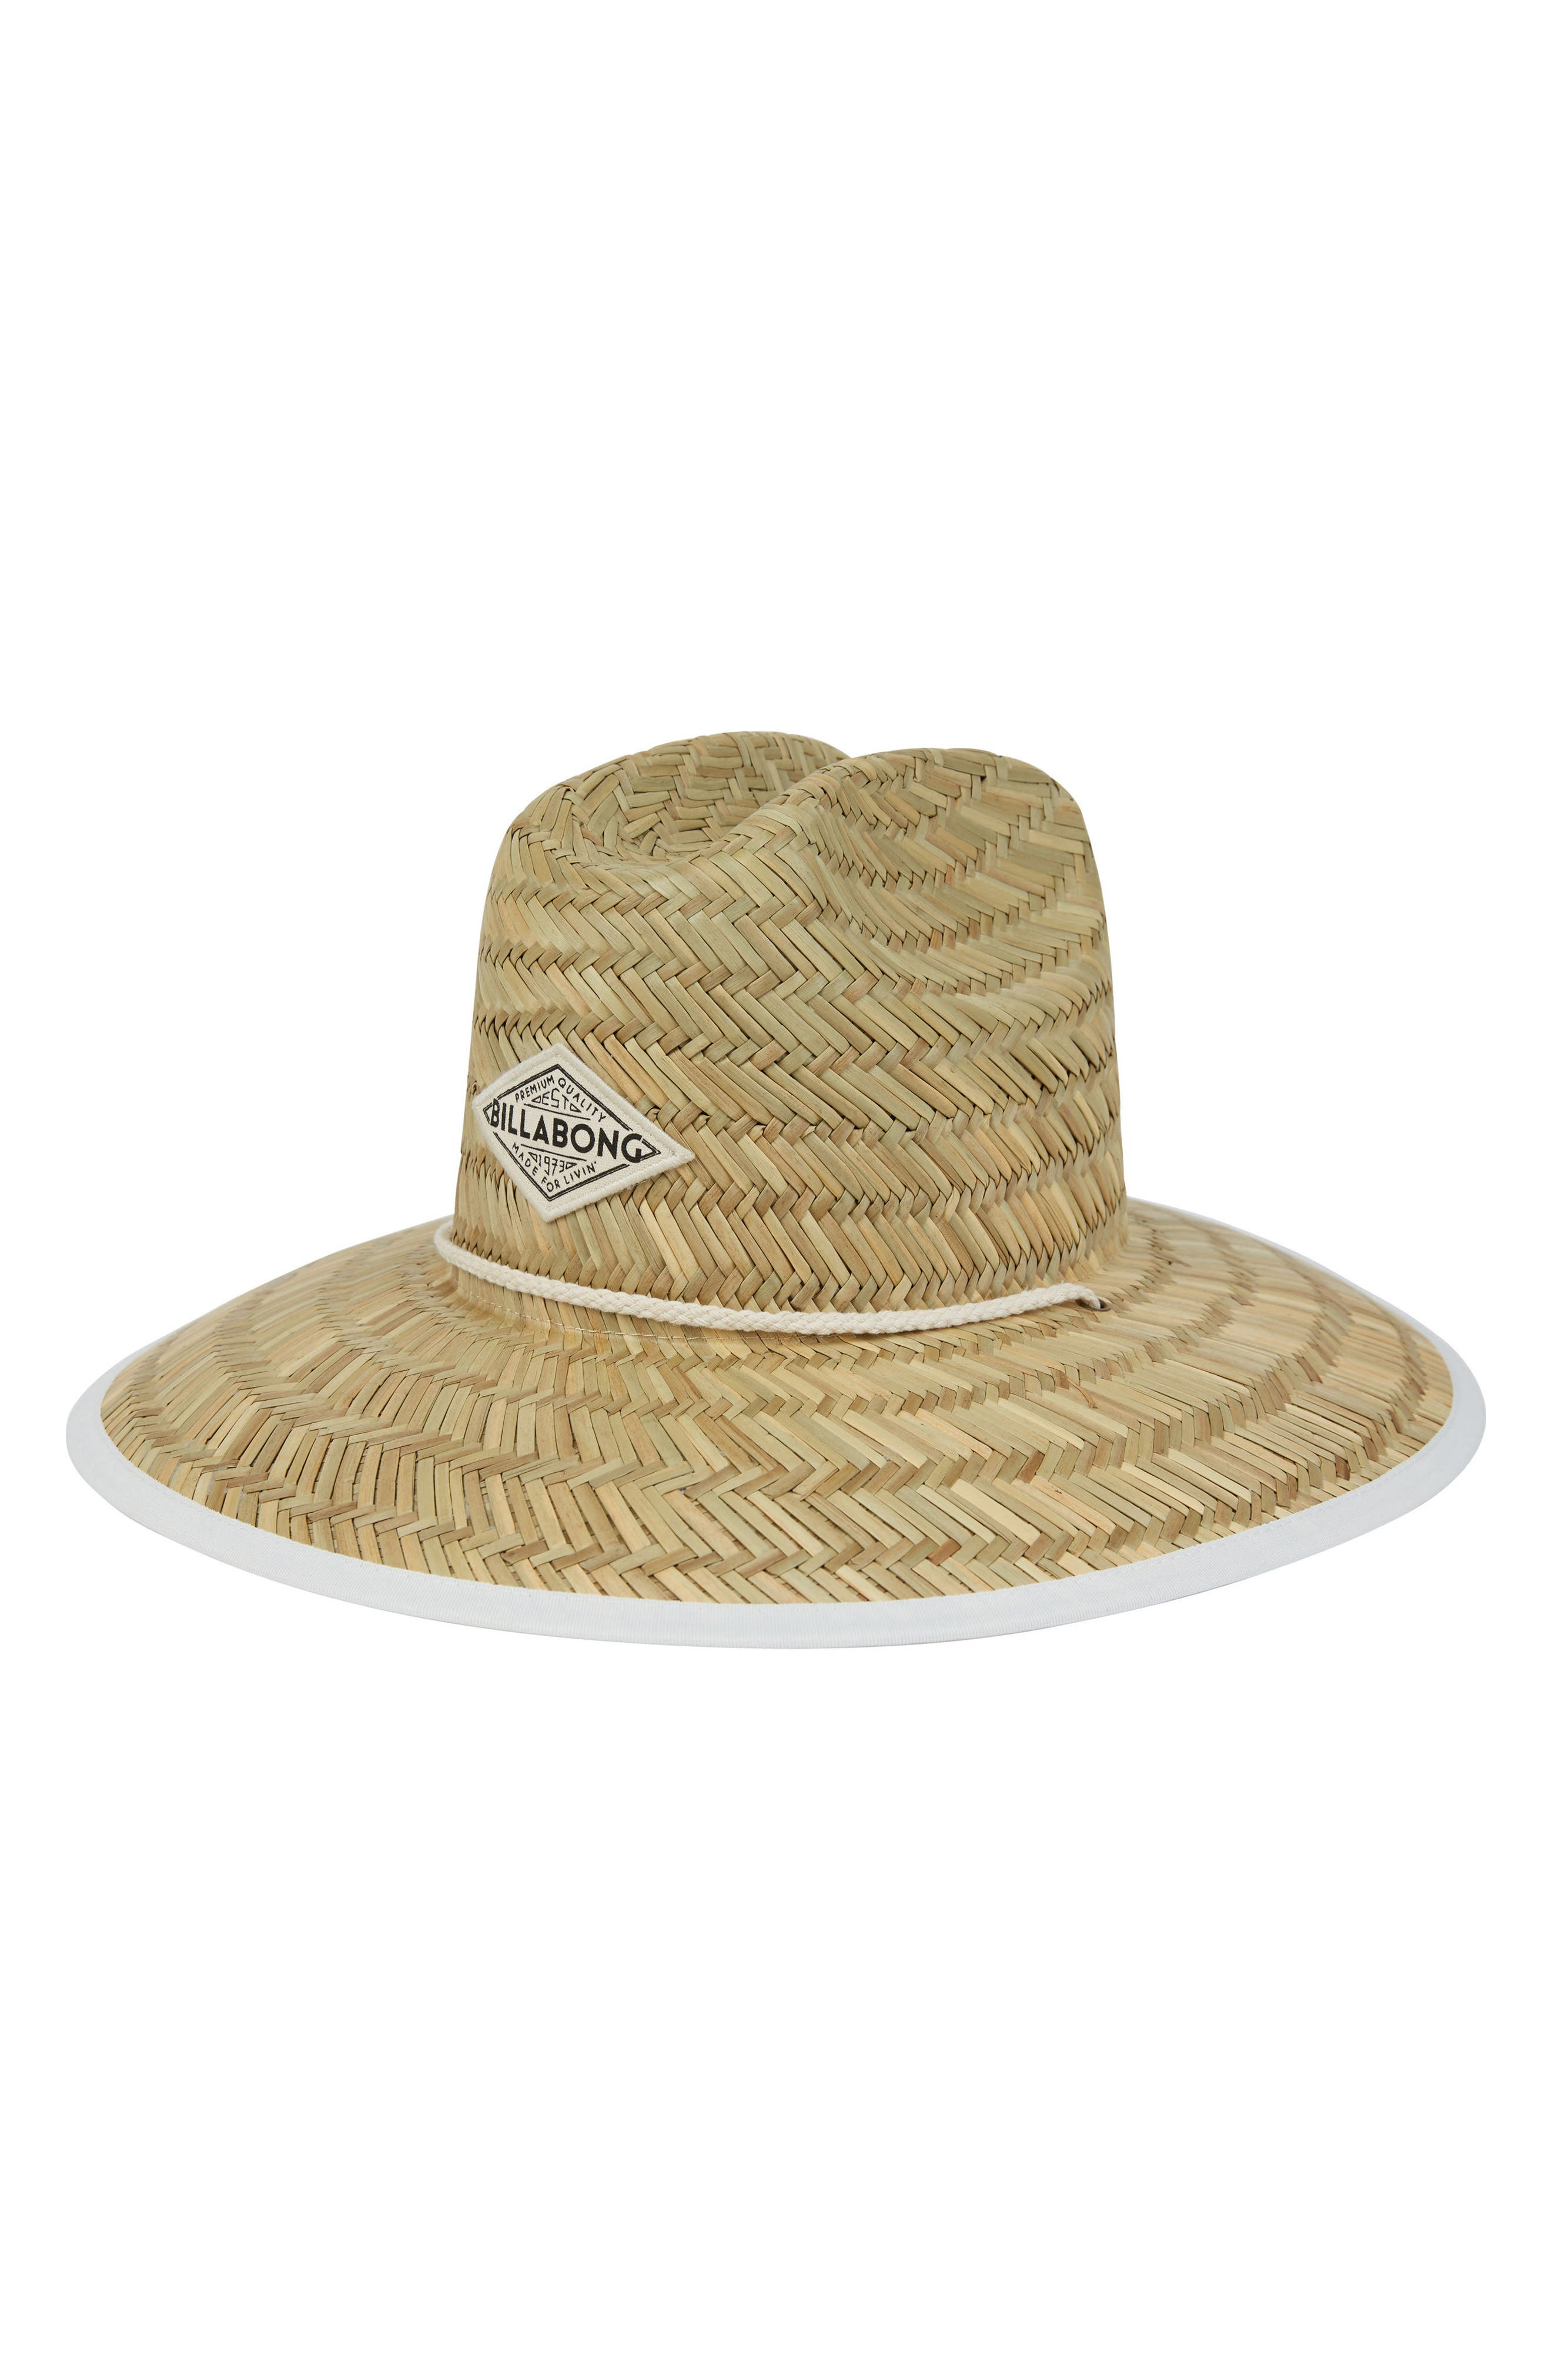 Tipton Straw Hat,                         Main,                         color, Natural